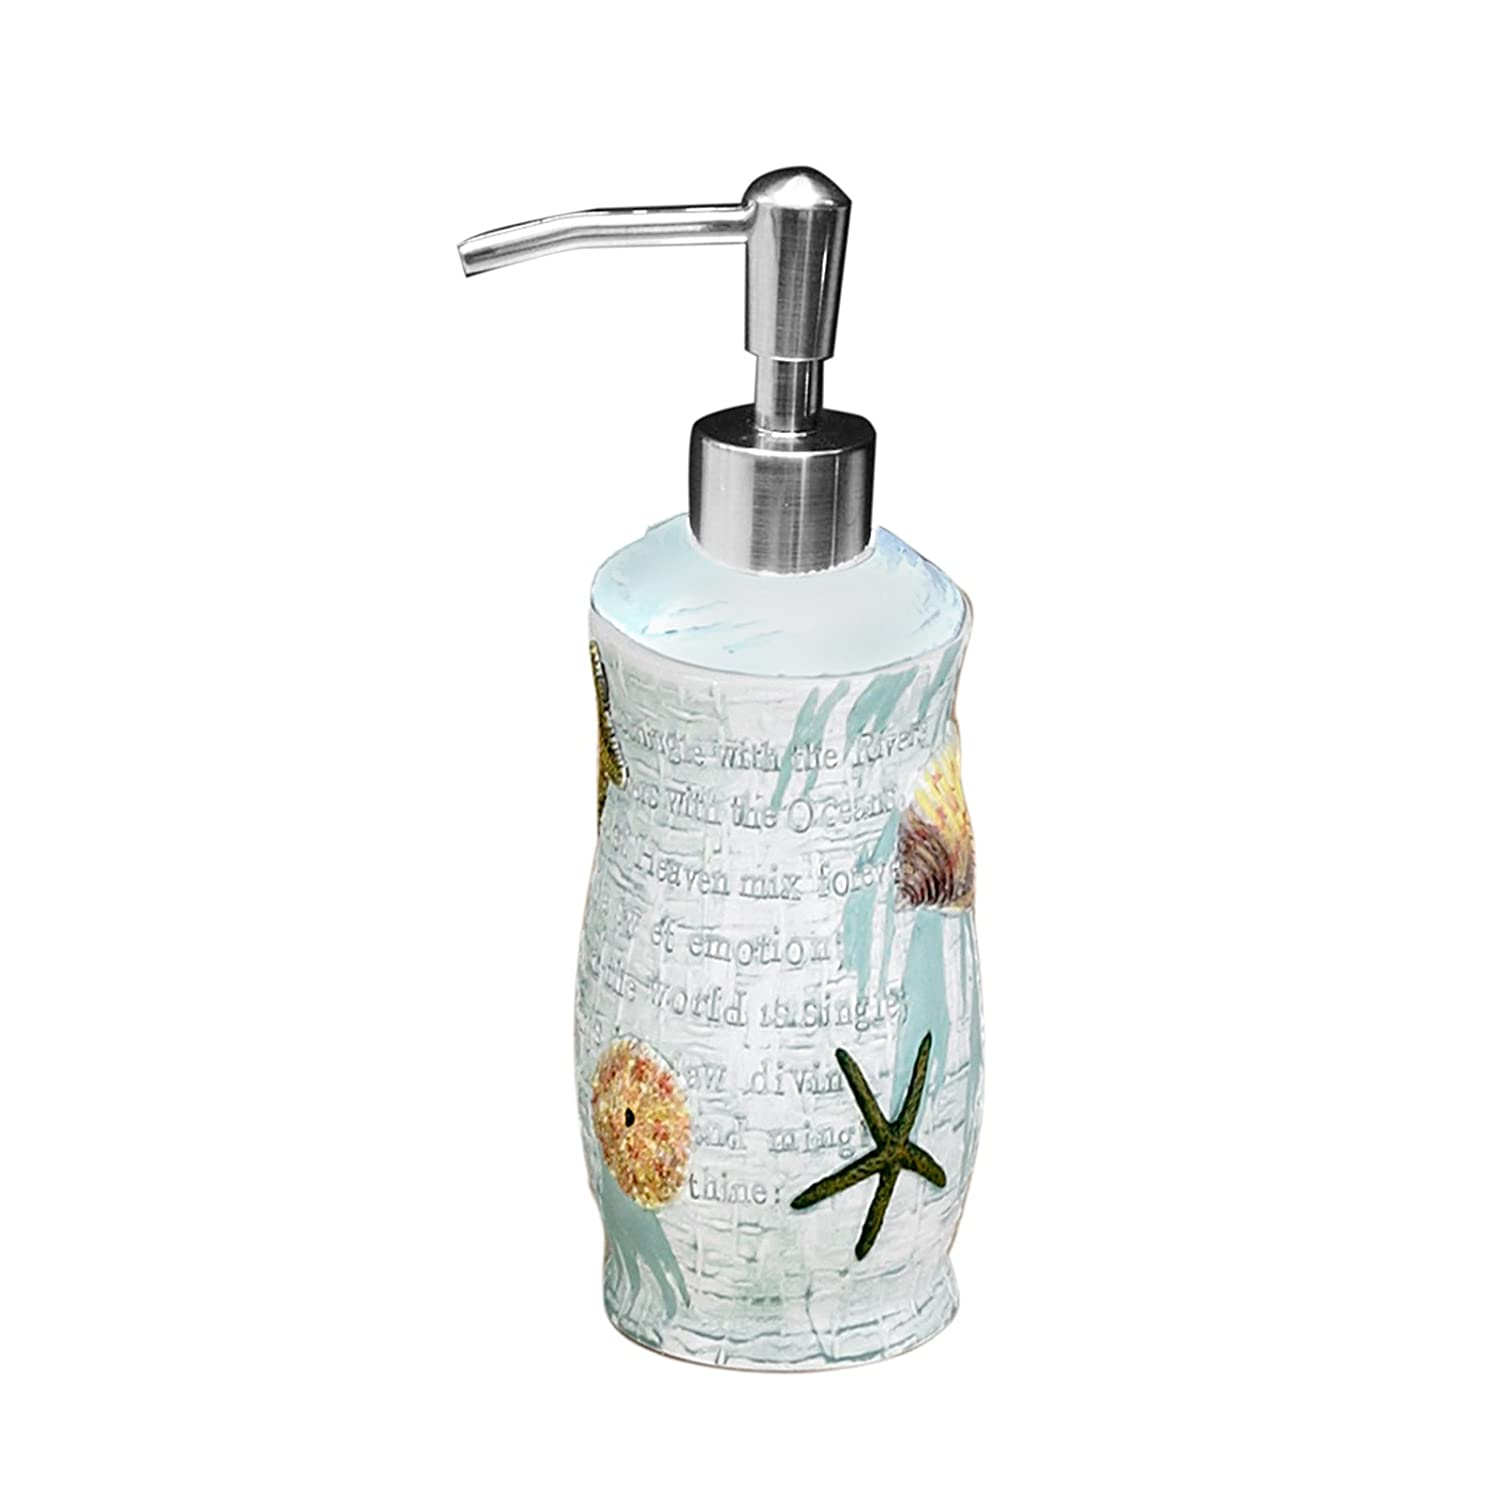 Aqua 795660 Popular Bath Toothbrush Holder Atlantic Collection